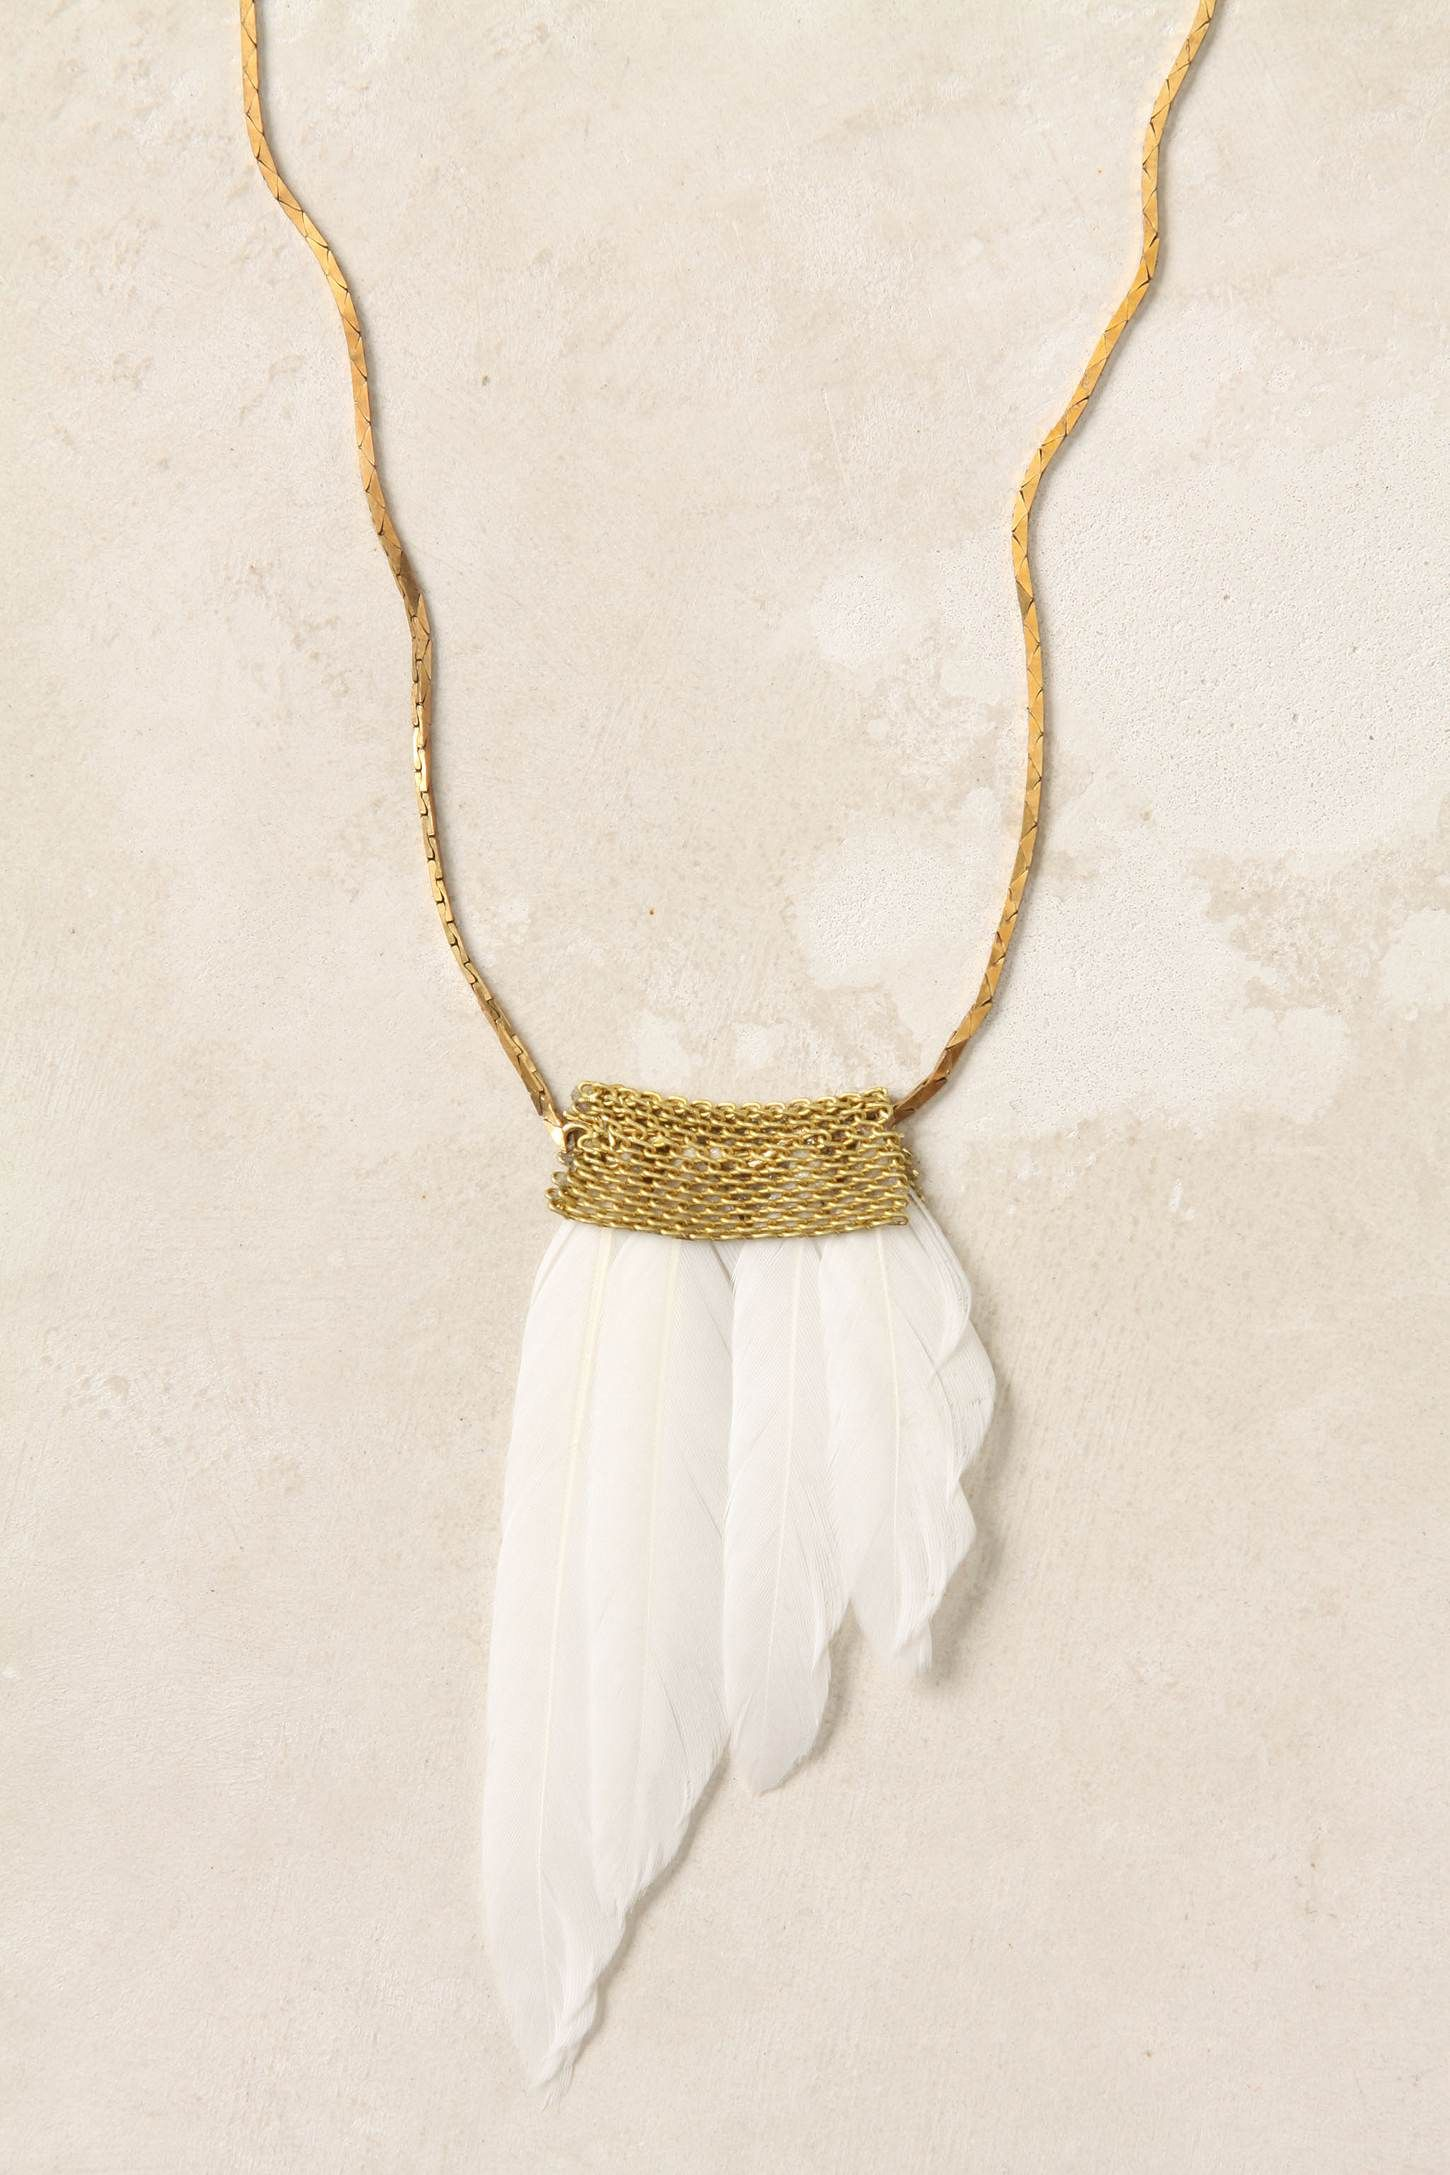 natural handmade feathered feather you racy the necklace long perfectly lays if bib pin over and